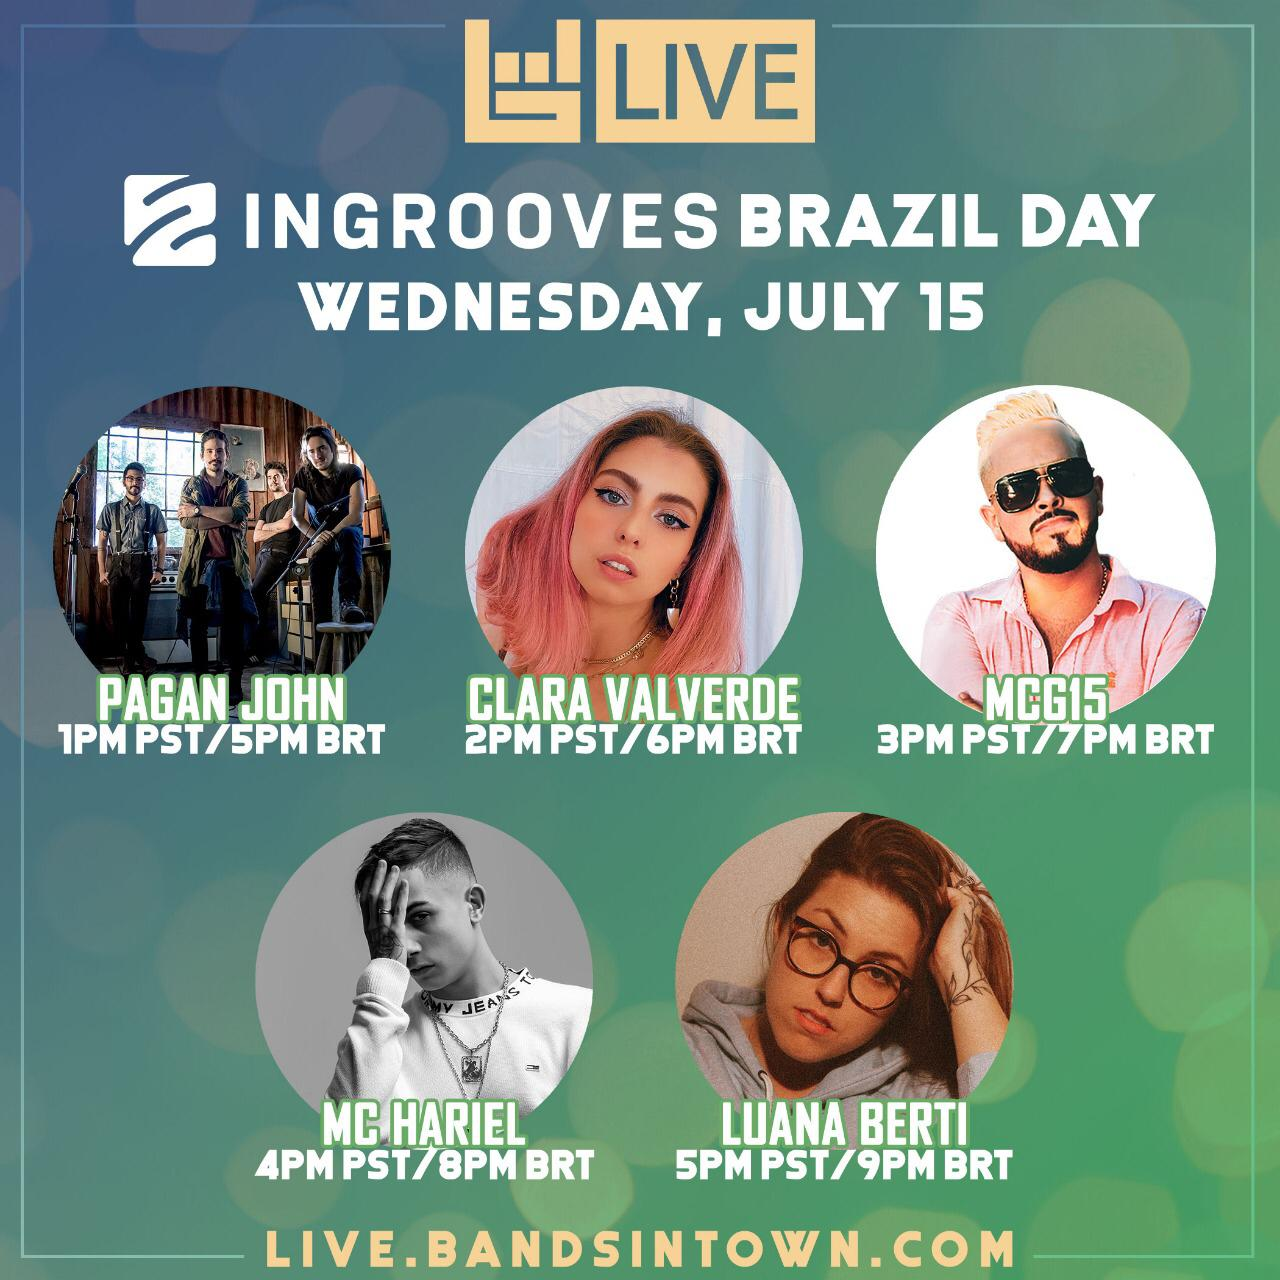 Ingrooves Brazil Day